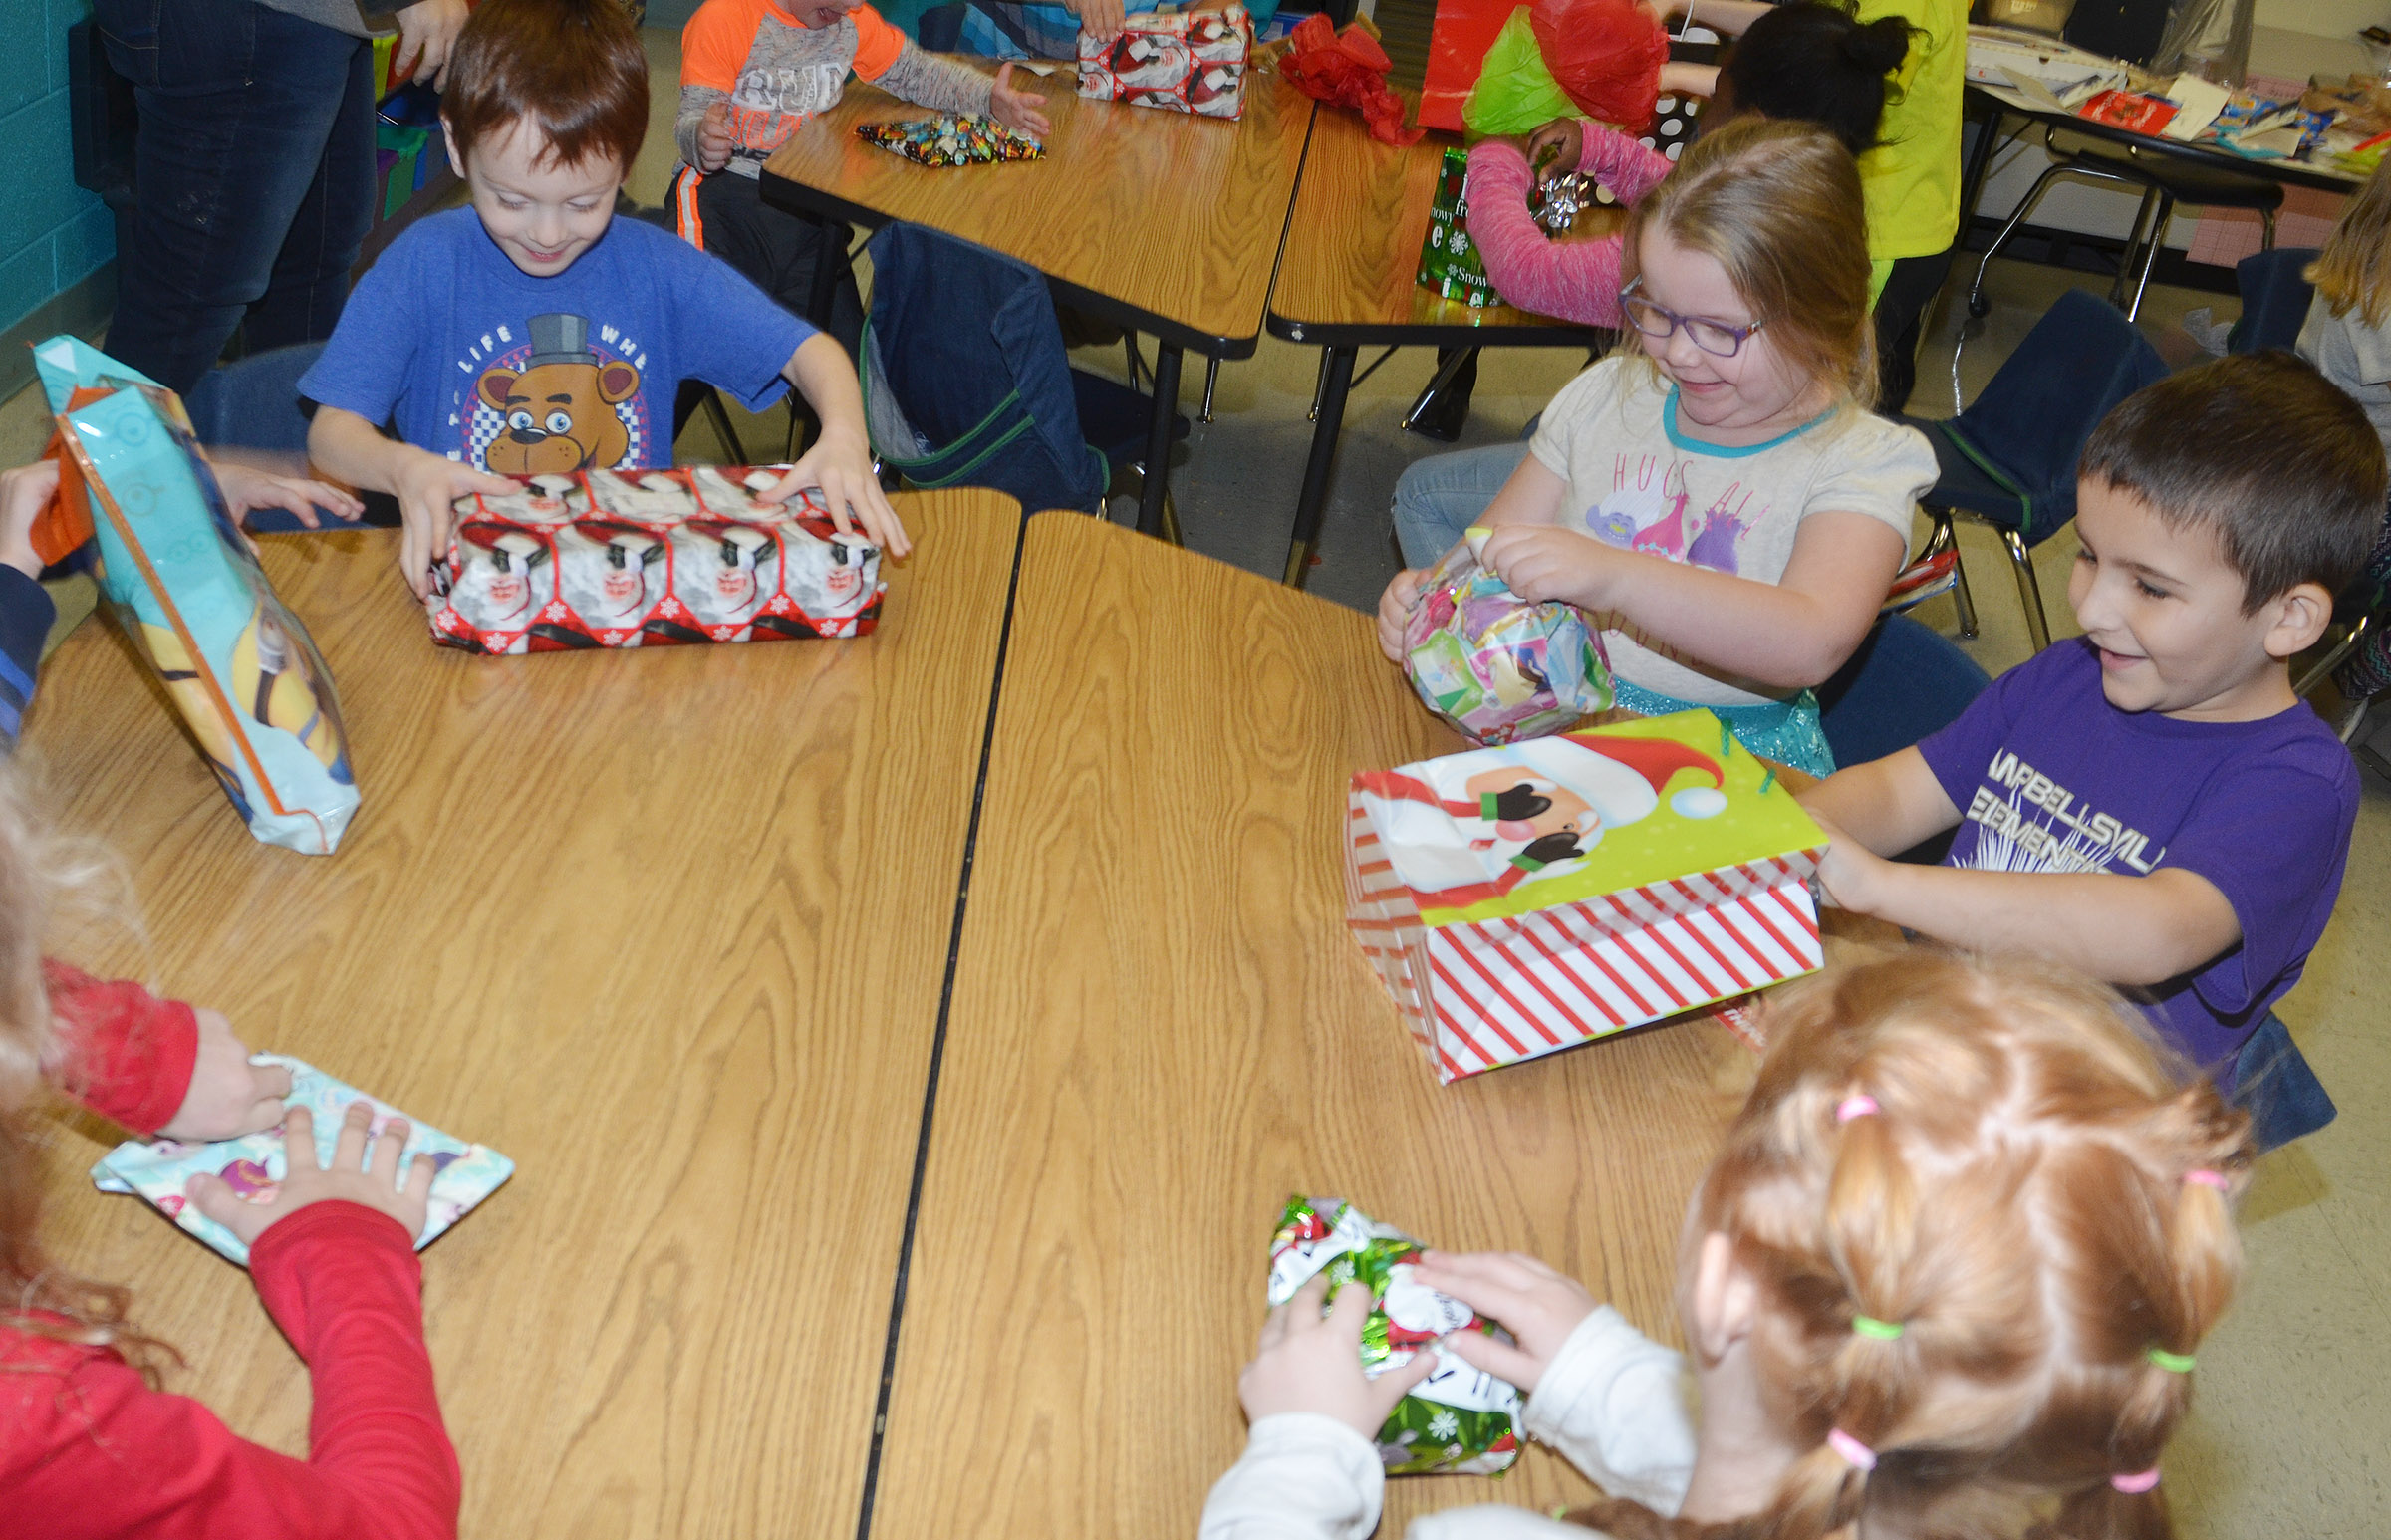 CES first-graders in Amanda Greer's class open the presents they received in their class gift exchange.